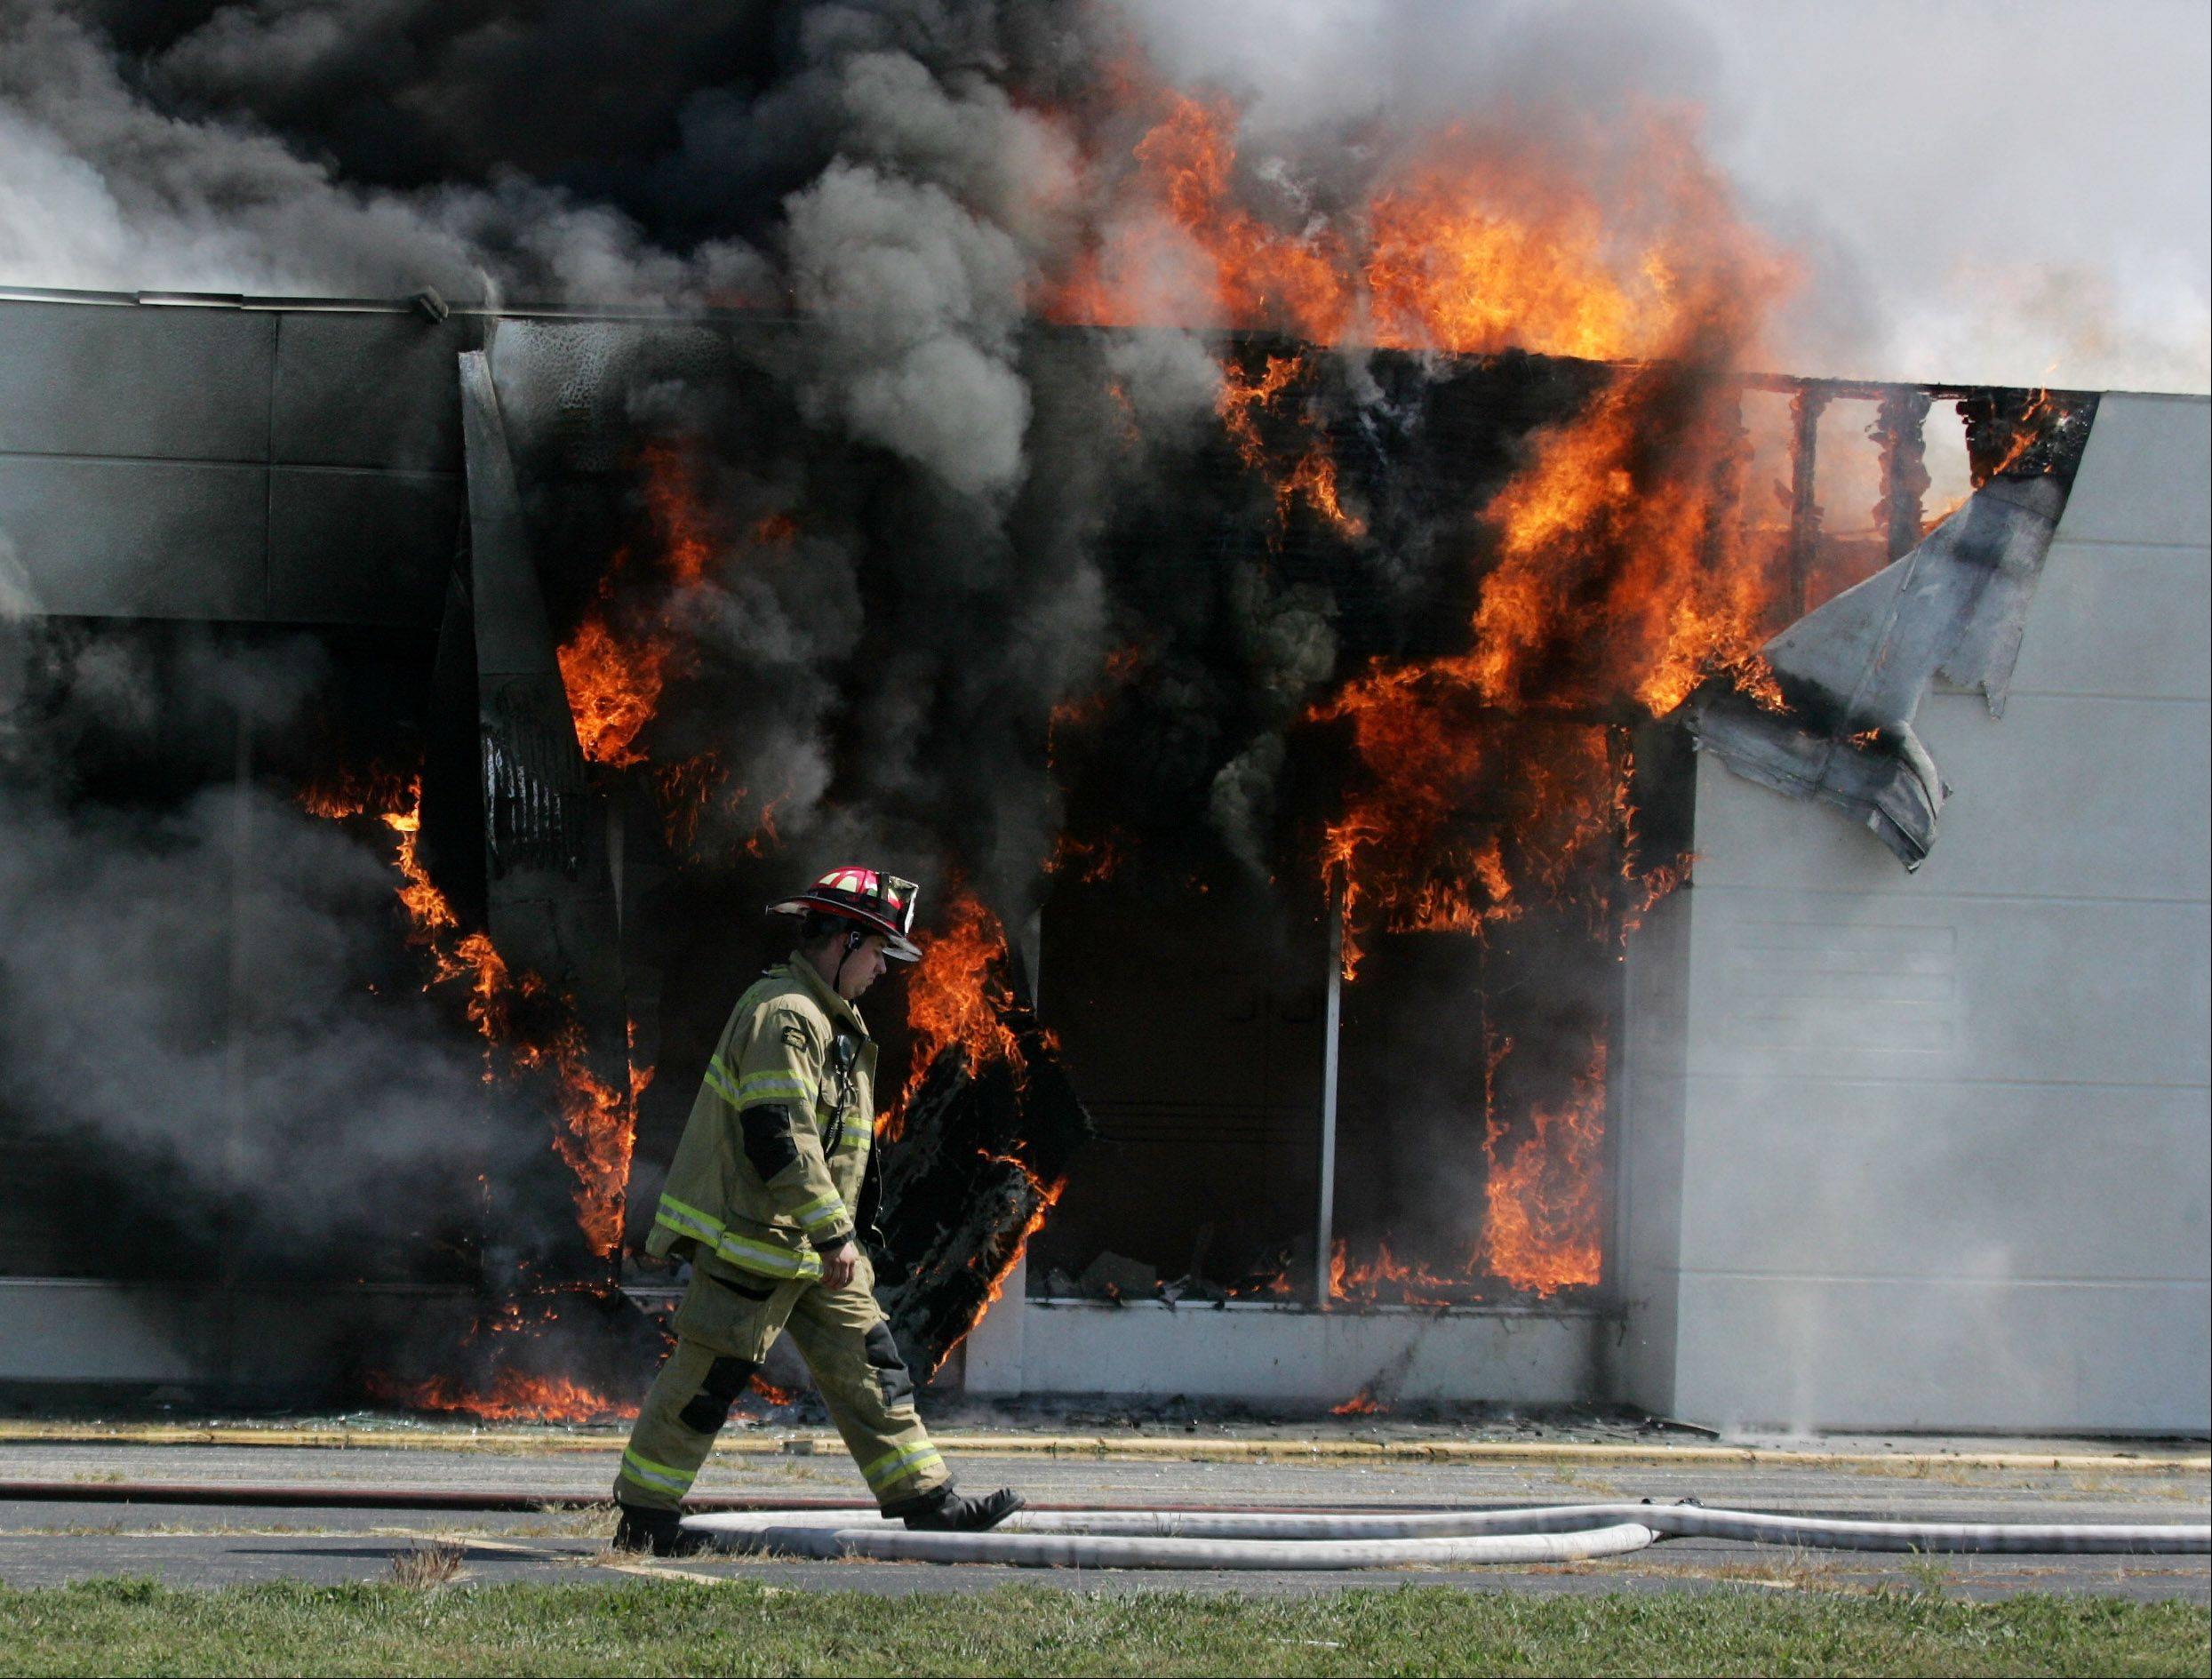 A firefighter walks past a burning blaze as firefighters from throughout Lake County were called to the scene of a fire at the Knights Inn hotel Monday in North Chicago. The fire broke out shortly before 10:30 a.m. at the vacant hotel on Green Bay Road.